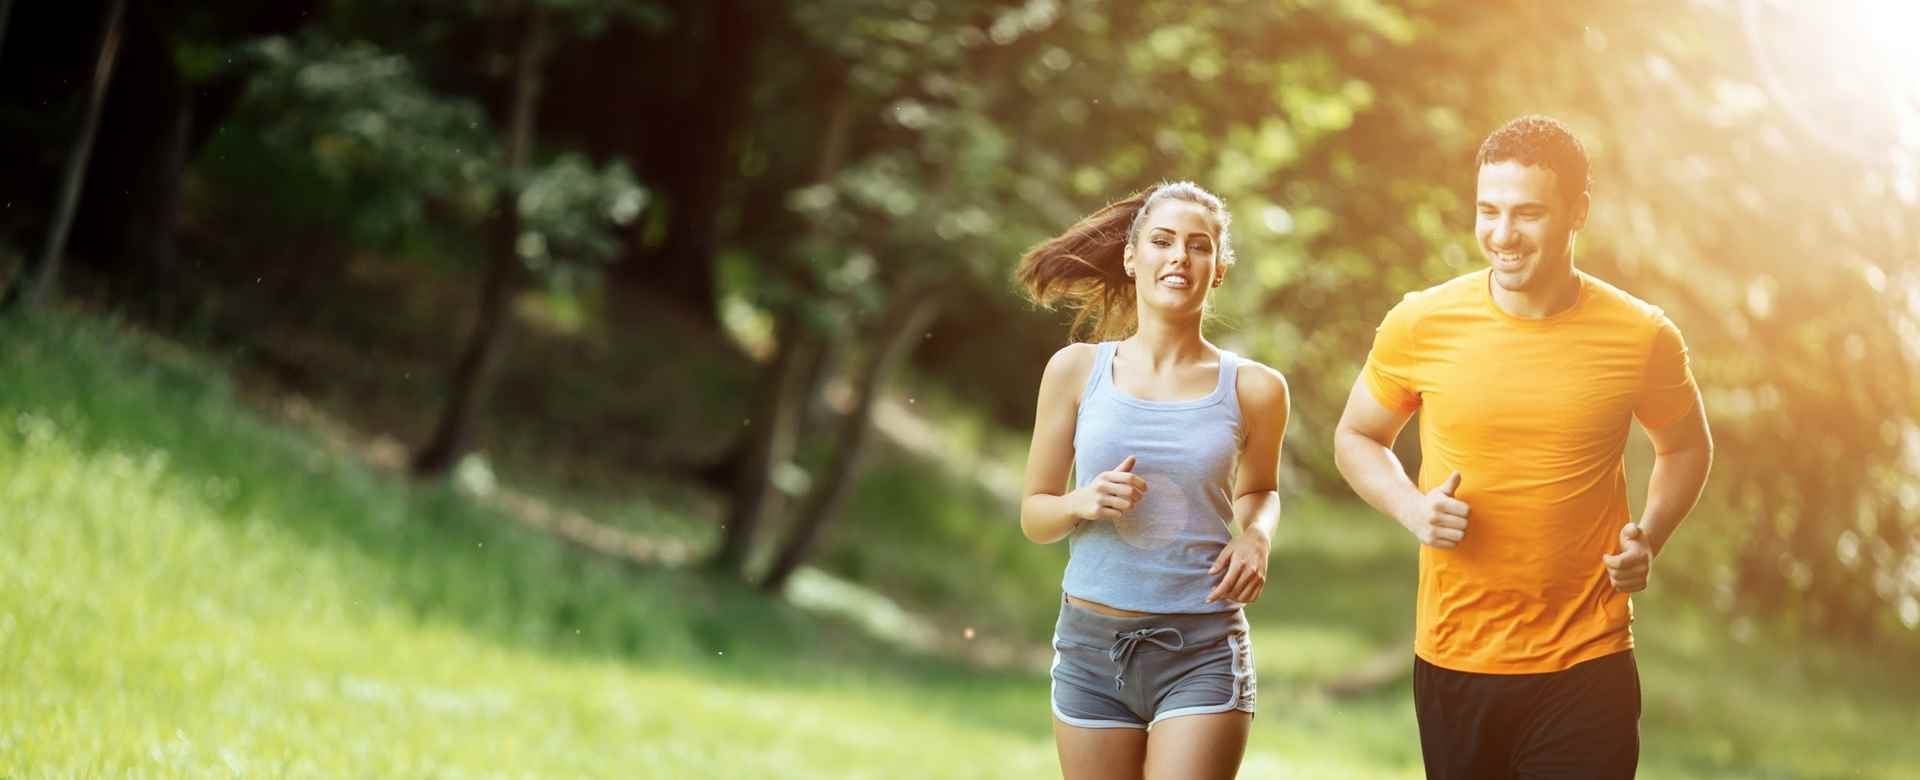 Promoting Healthy Choices through Wellness Programs